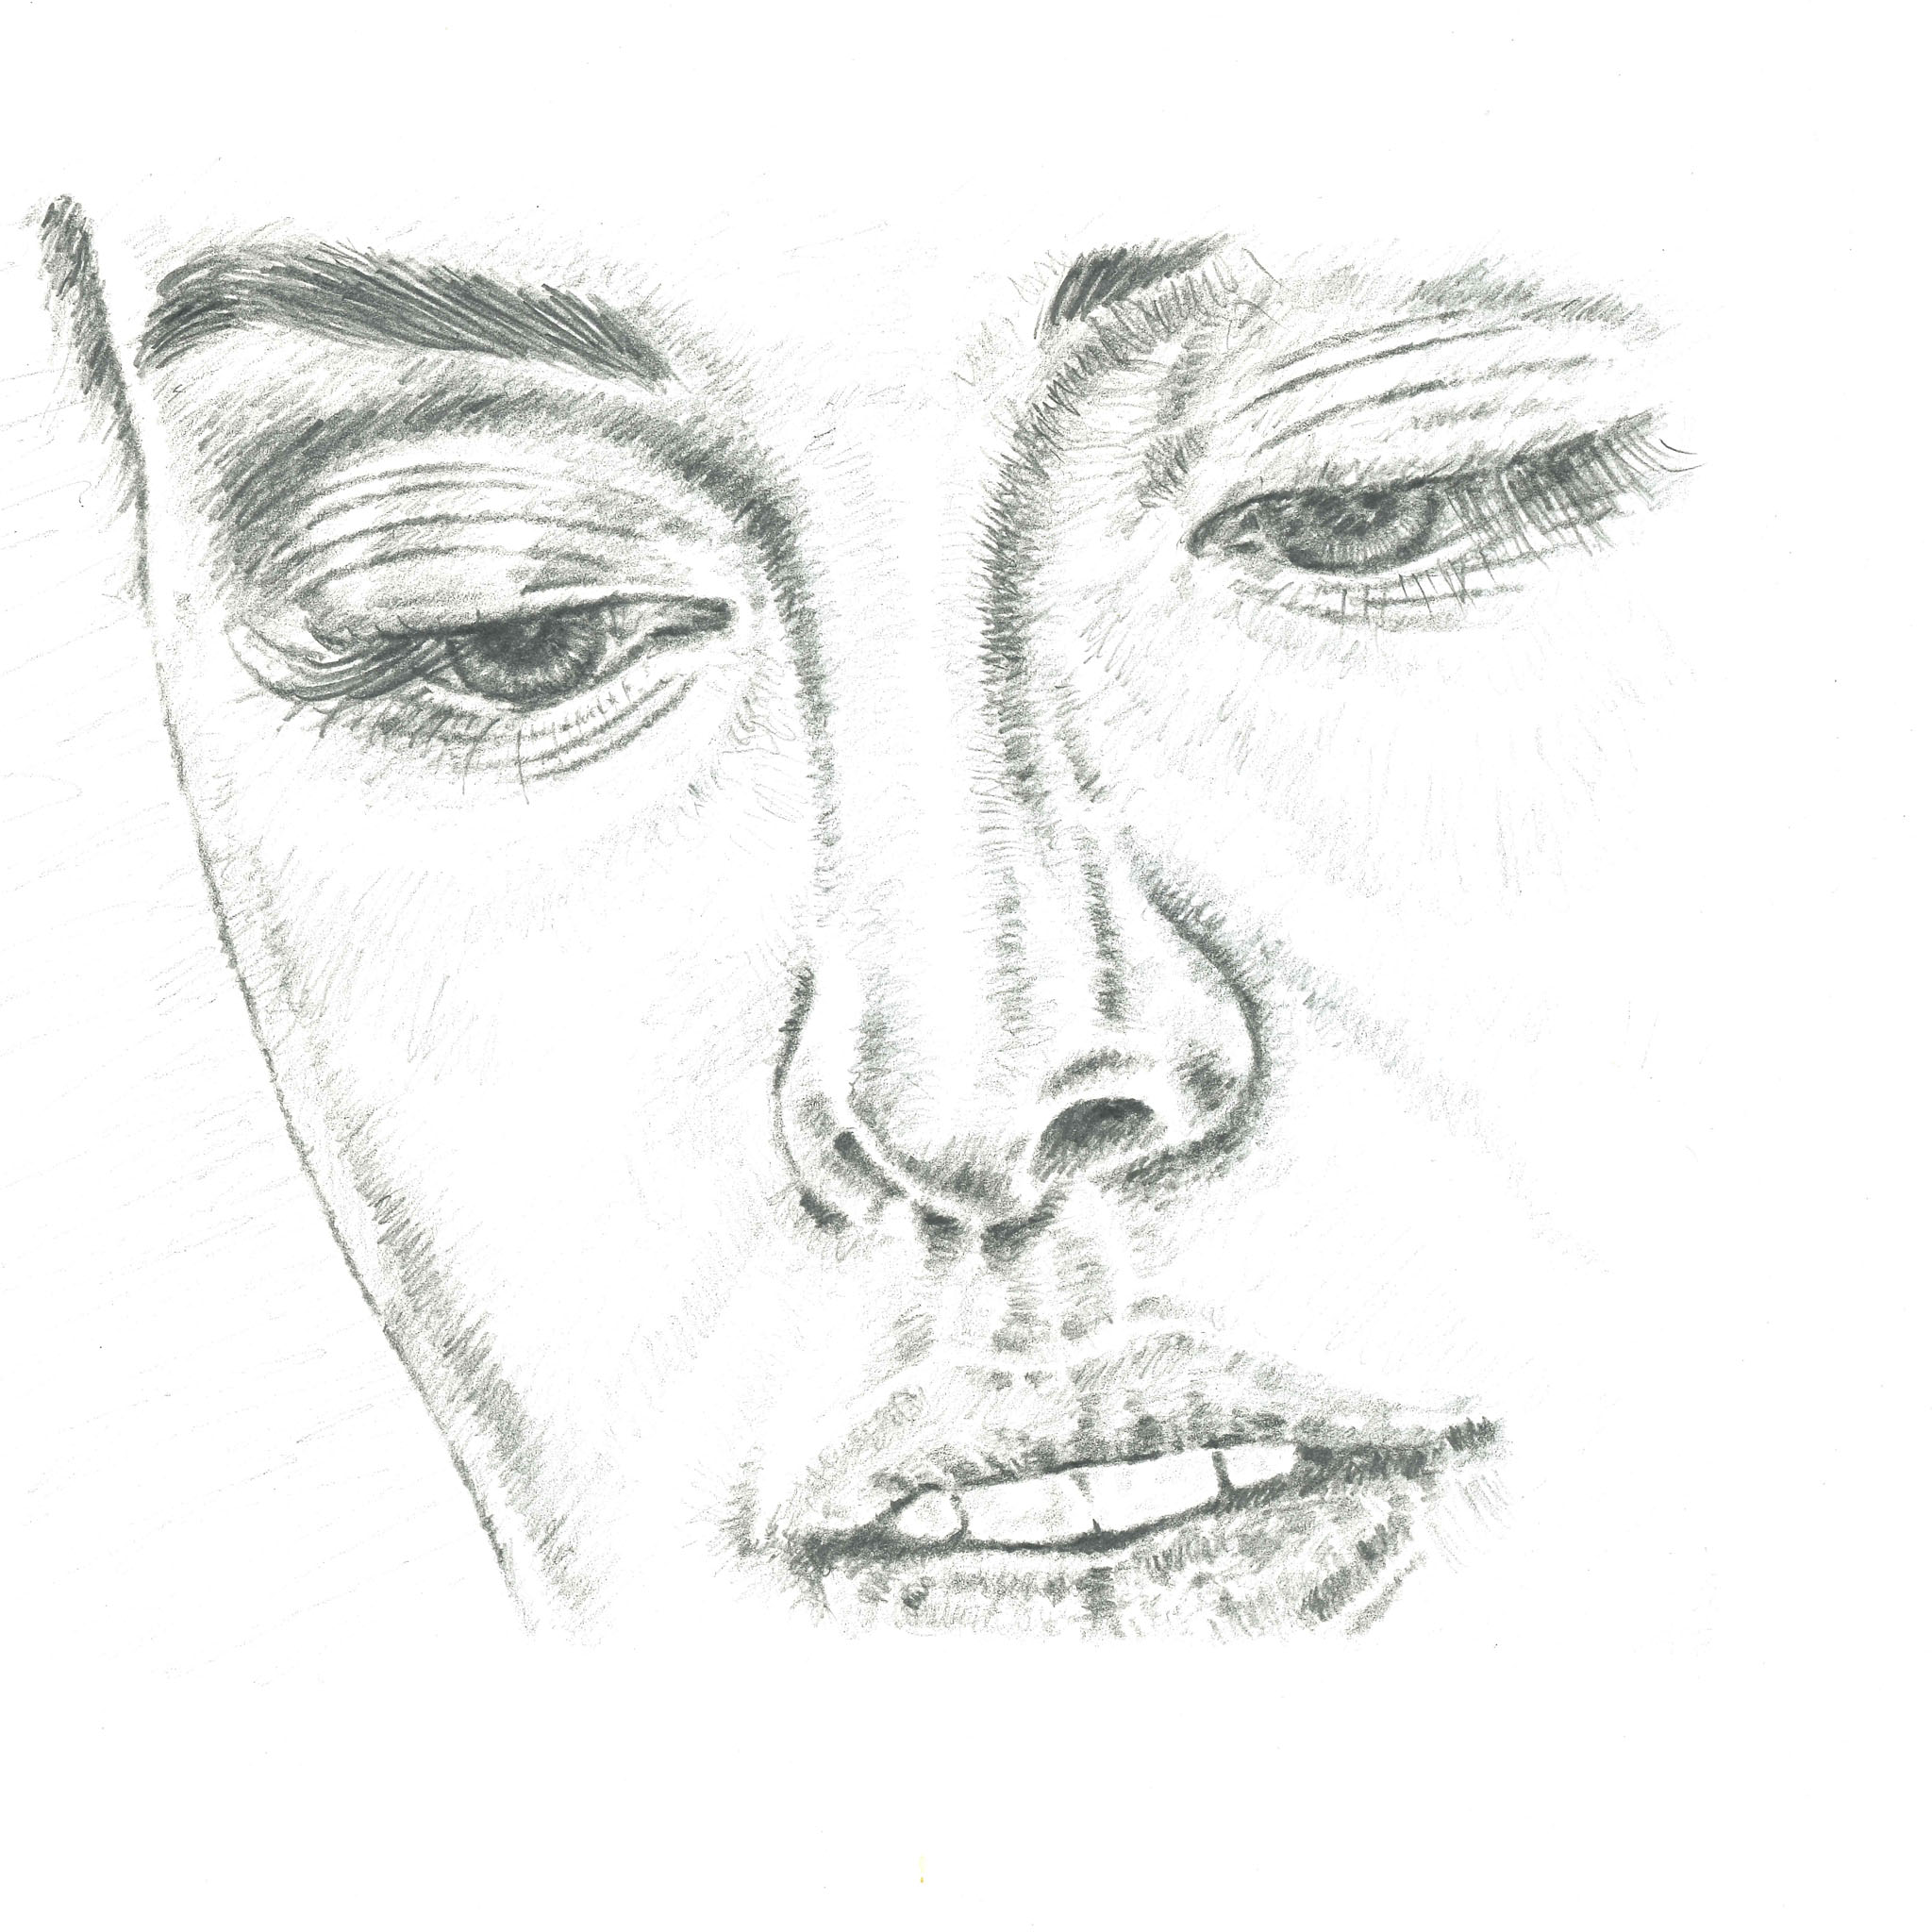 Nose sketch showing eyes